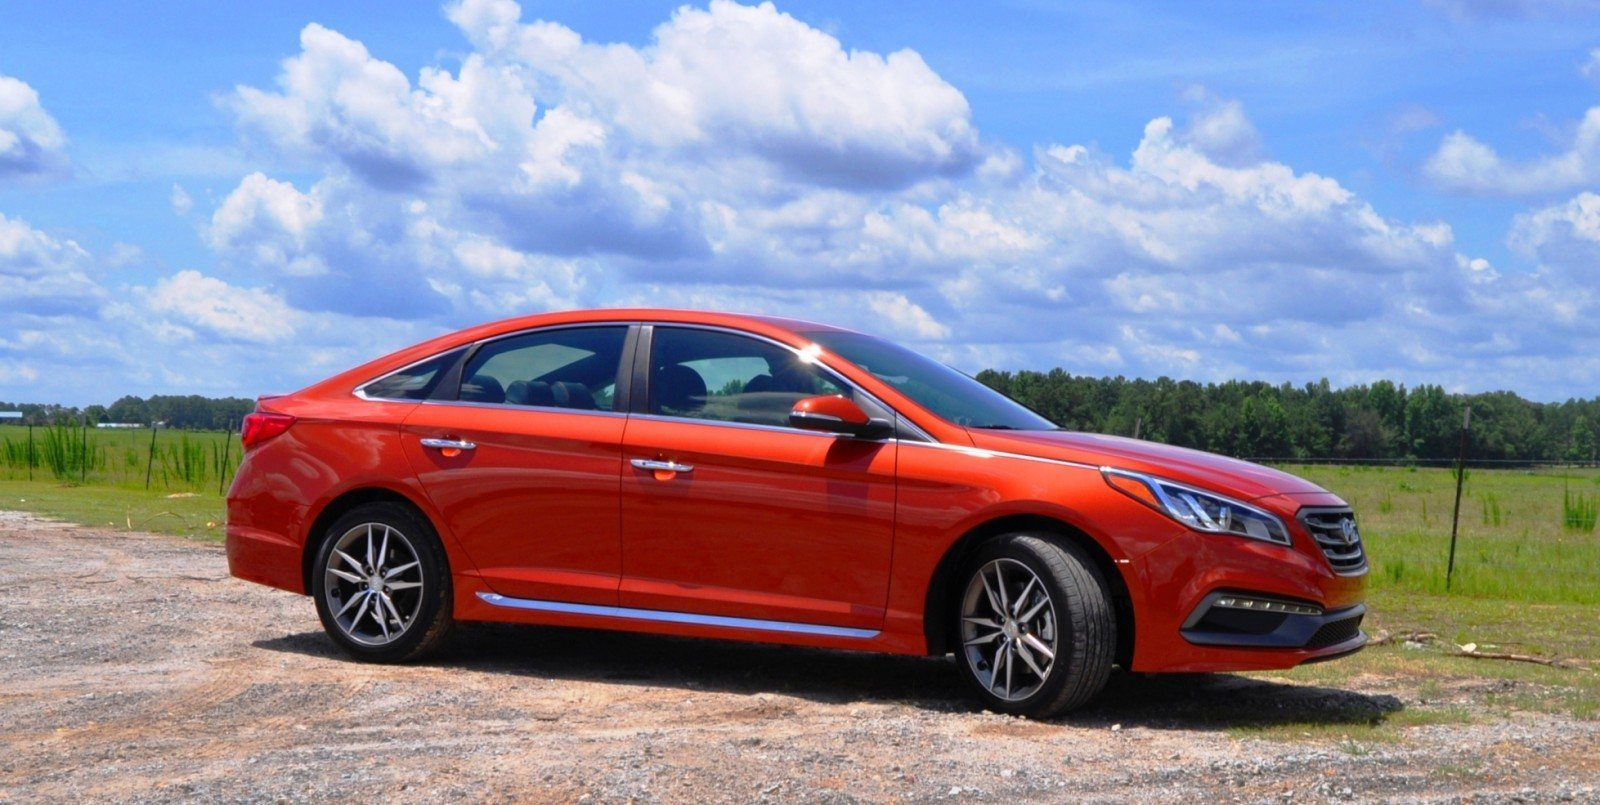 2015 hyundai sonata sport 2 0t 160 photos from national media launch 126. Black Bedroom Furniture Sets. Home Design Ideas